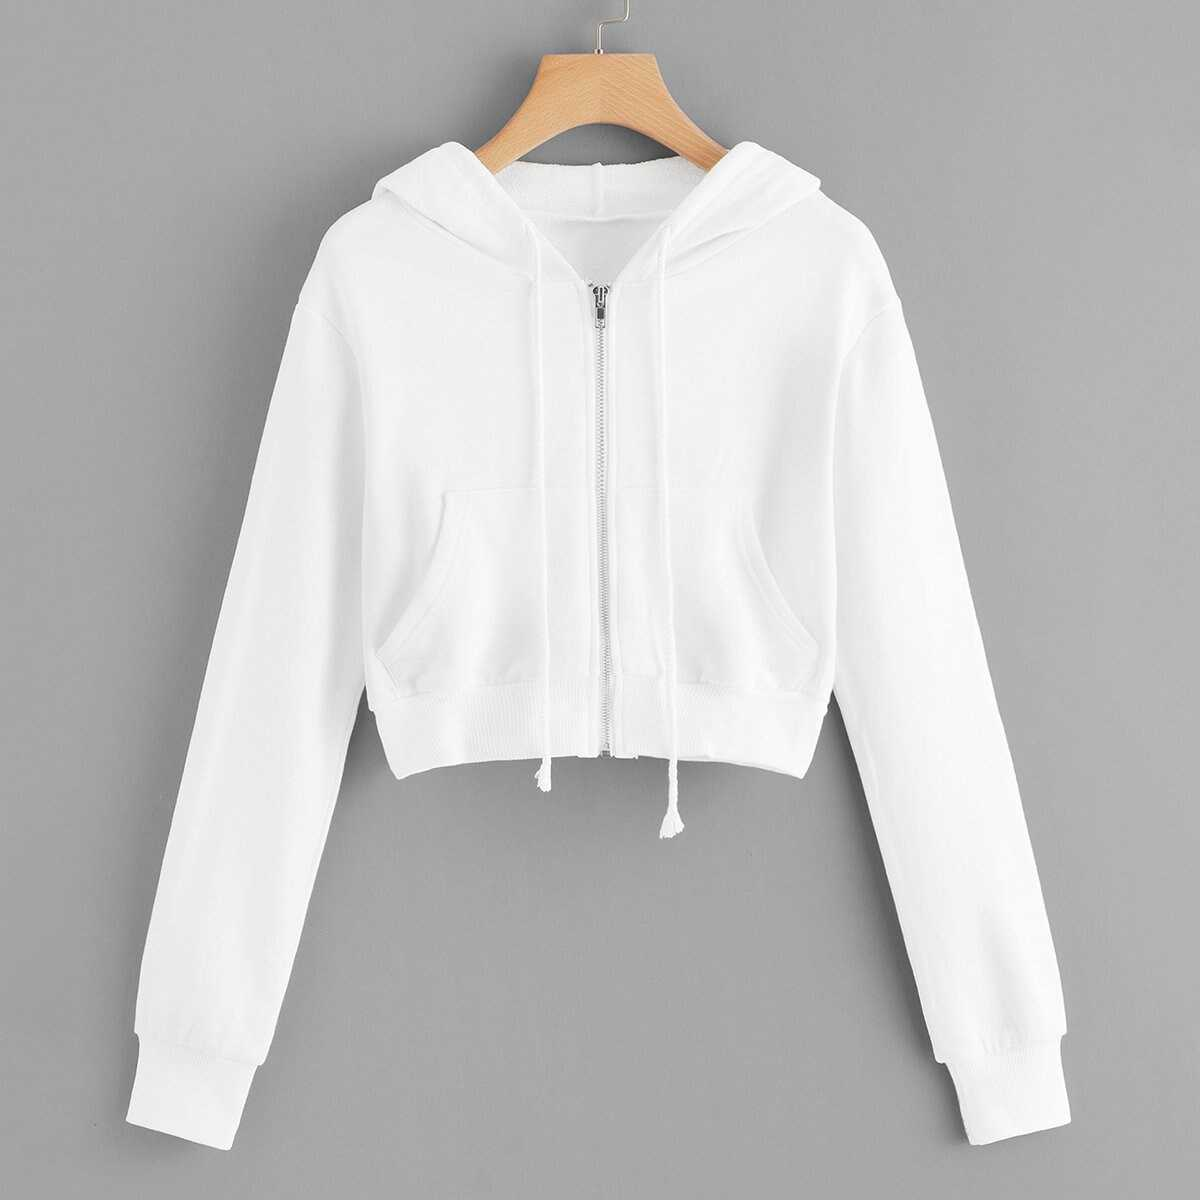 Zip Up Hooded Solid Jacket in White by ROMWE on GOOFASH